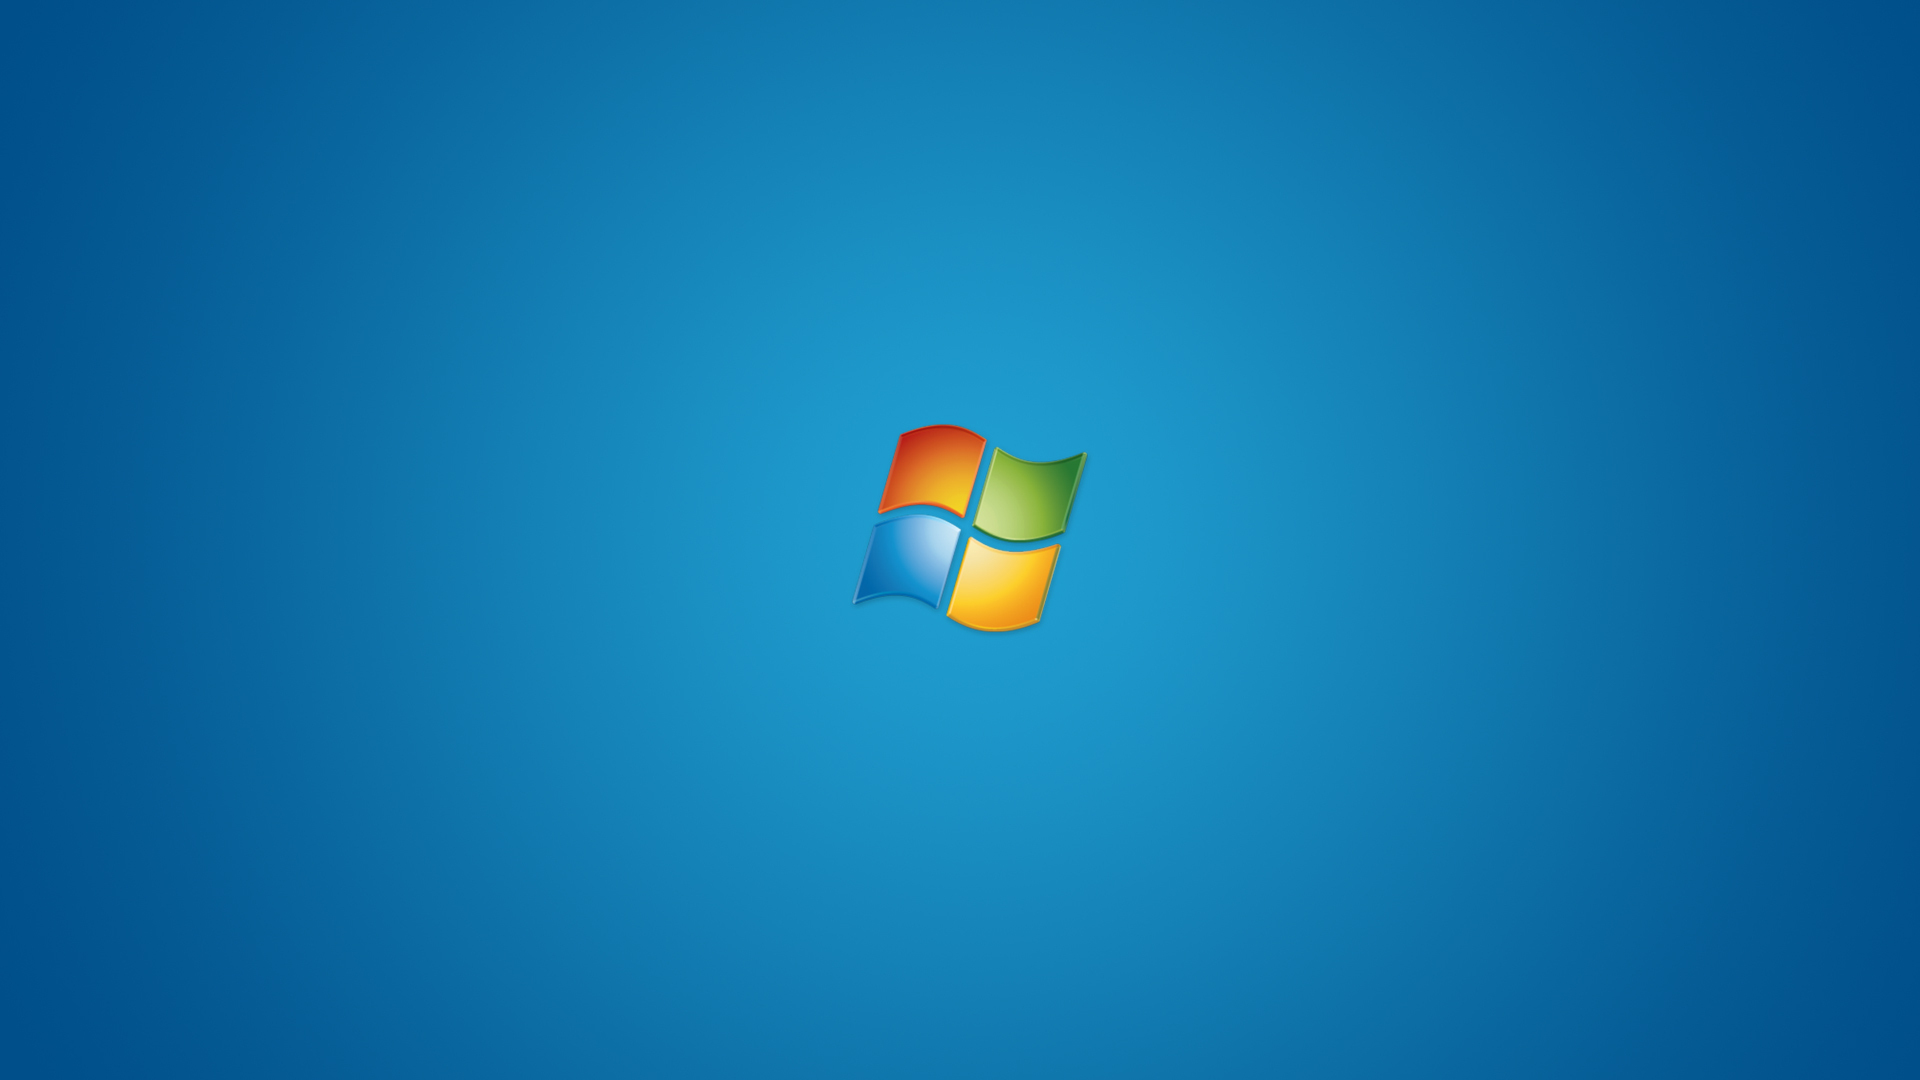 windows background computer microsoft